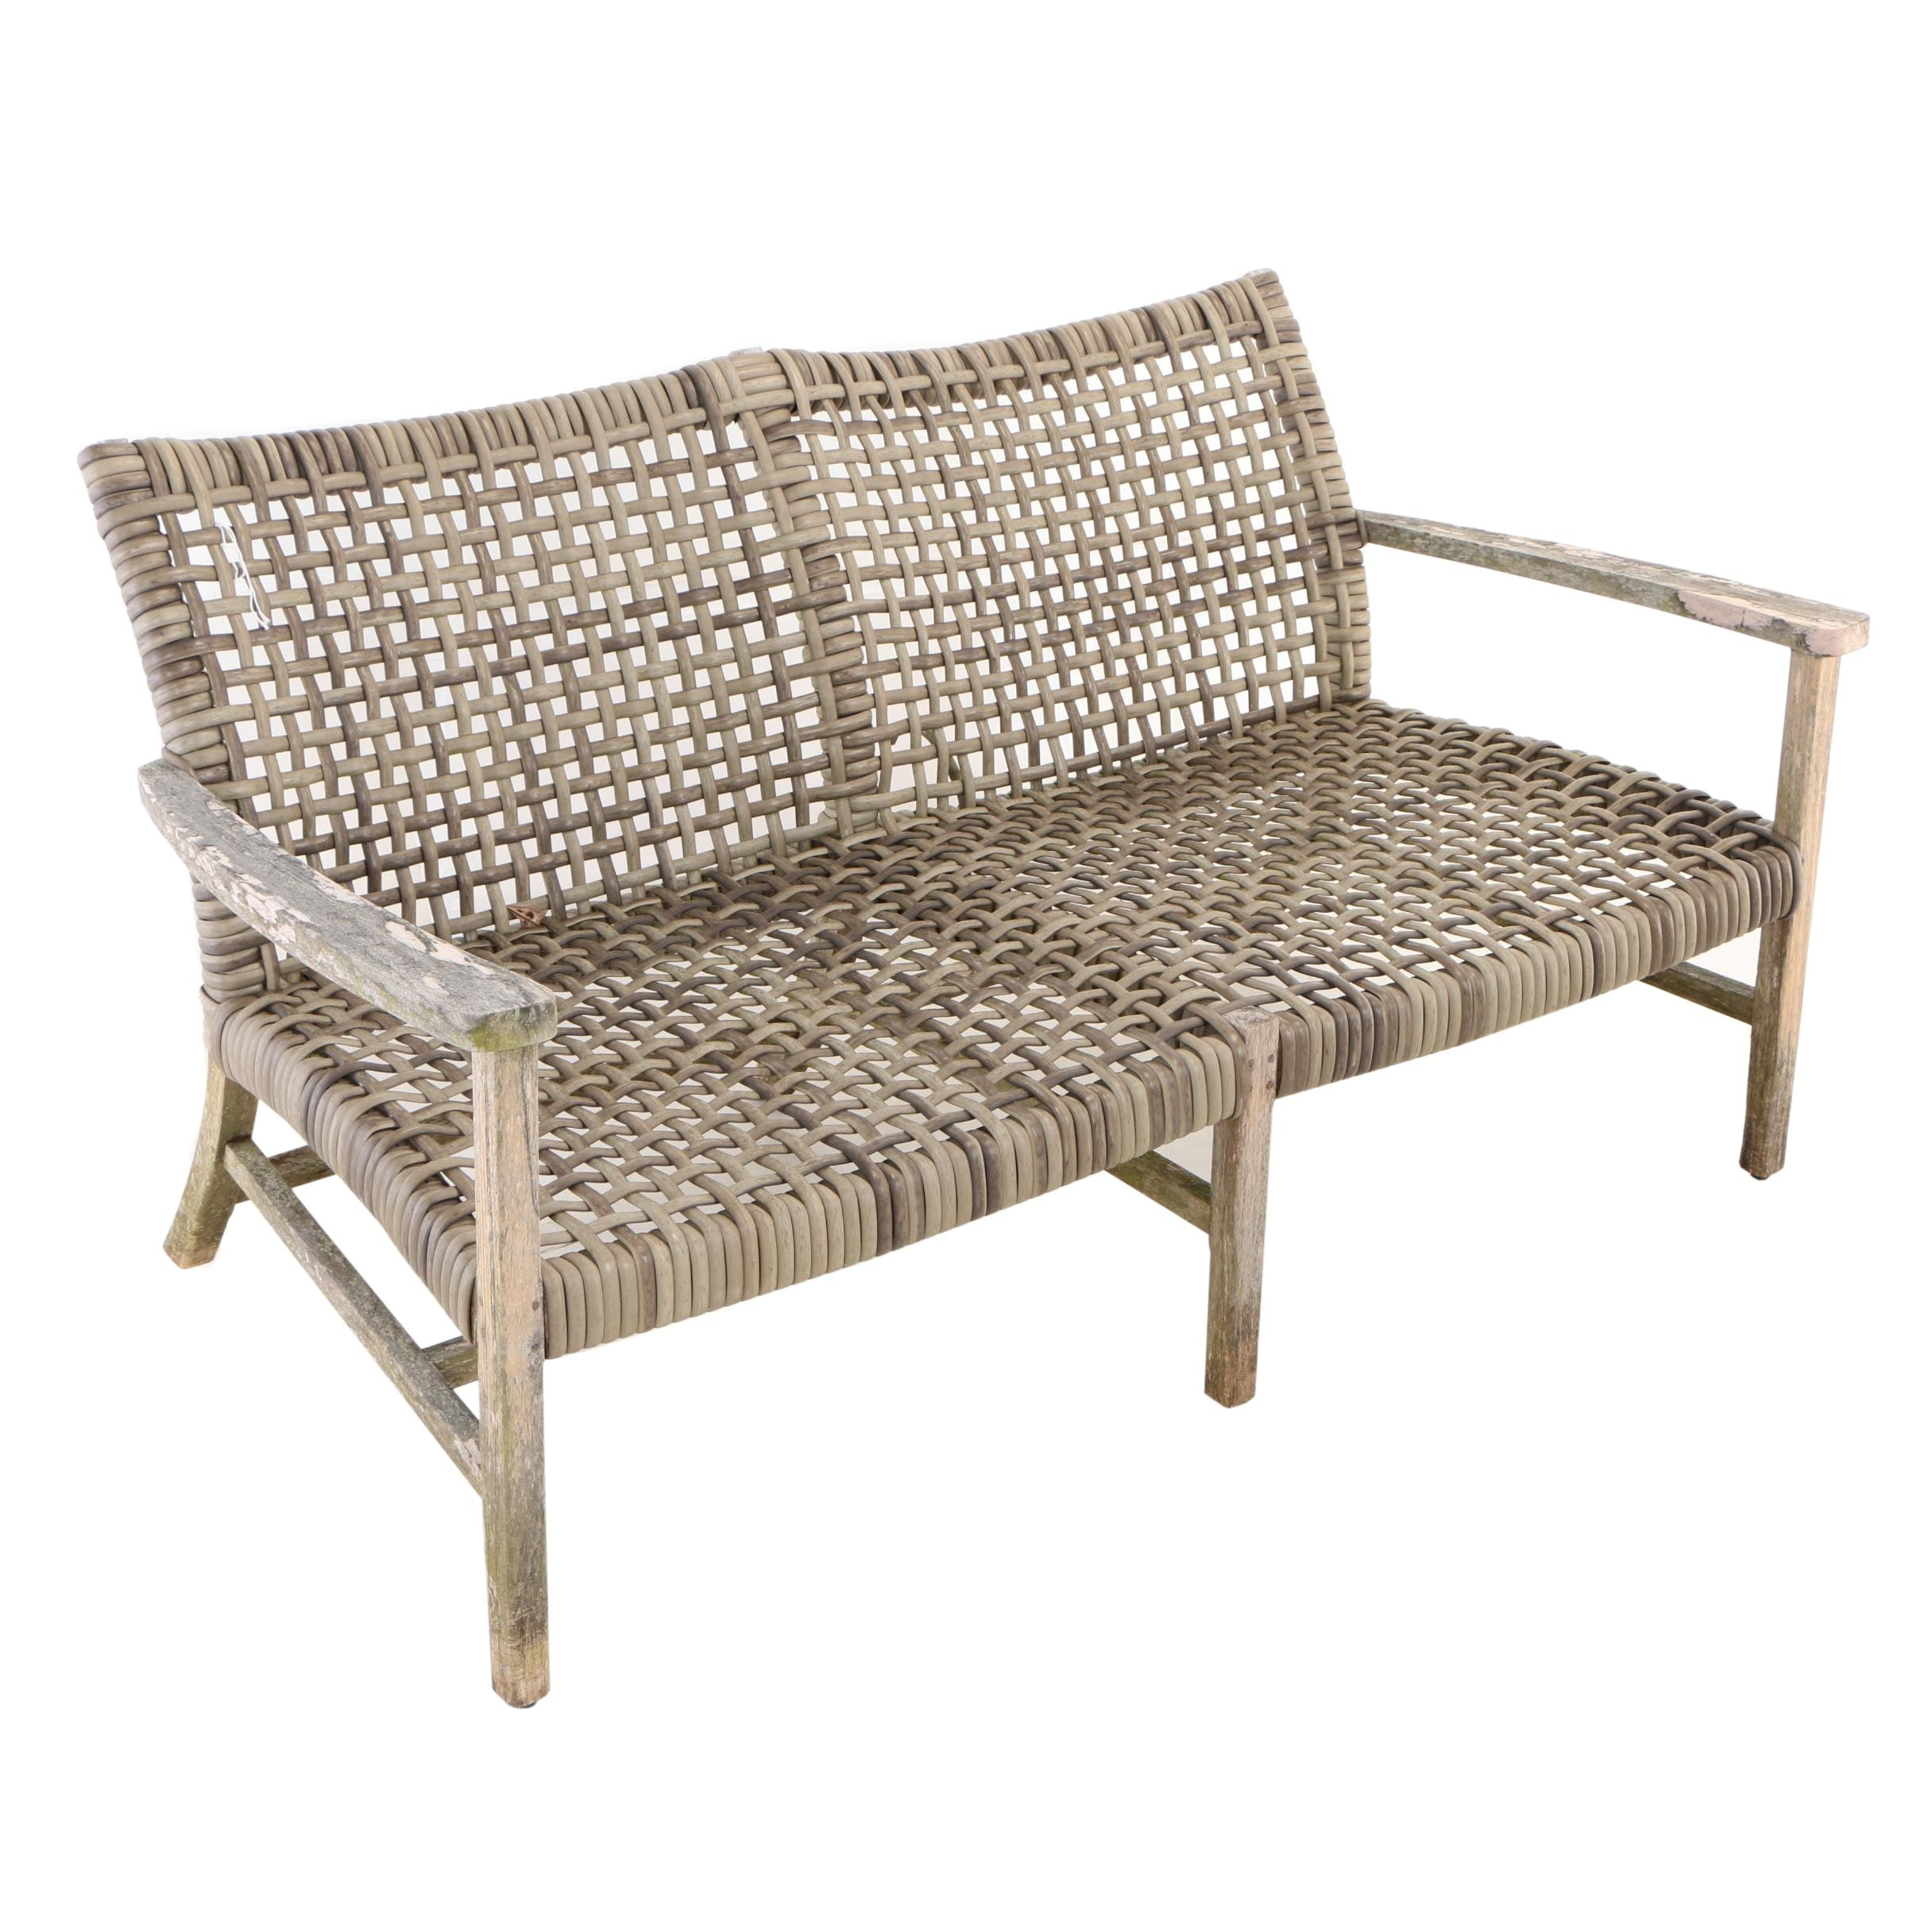 "Frontgate, Teak and Resin Wicker ""Isola"" Patio Loveseat"